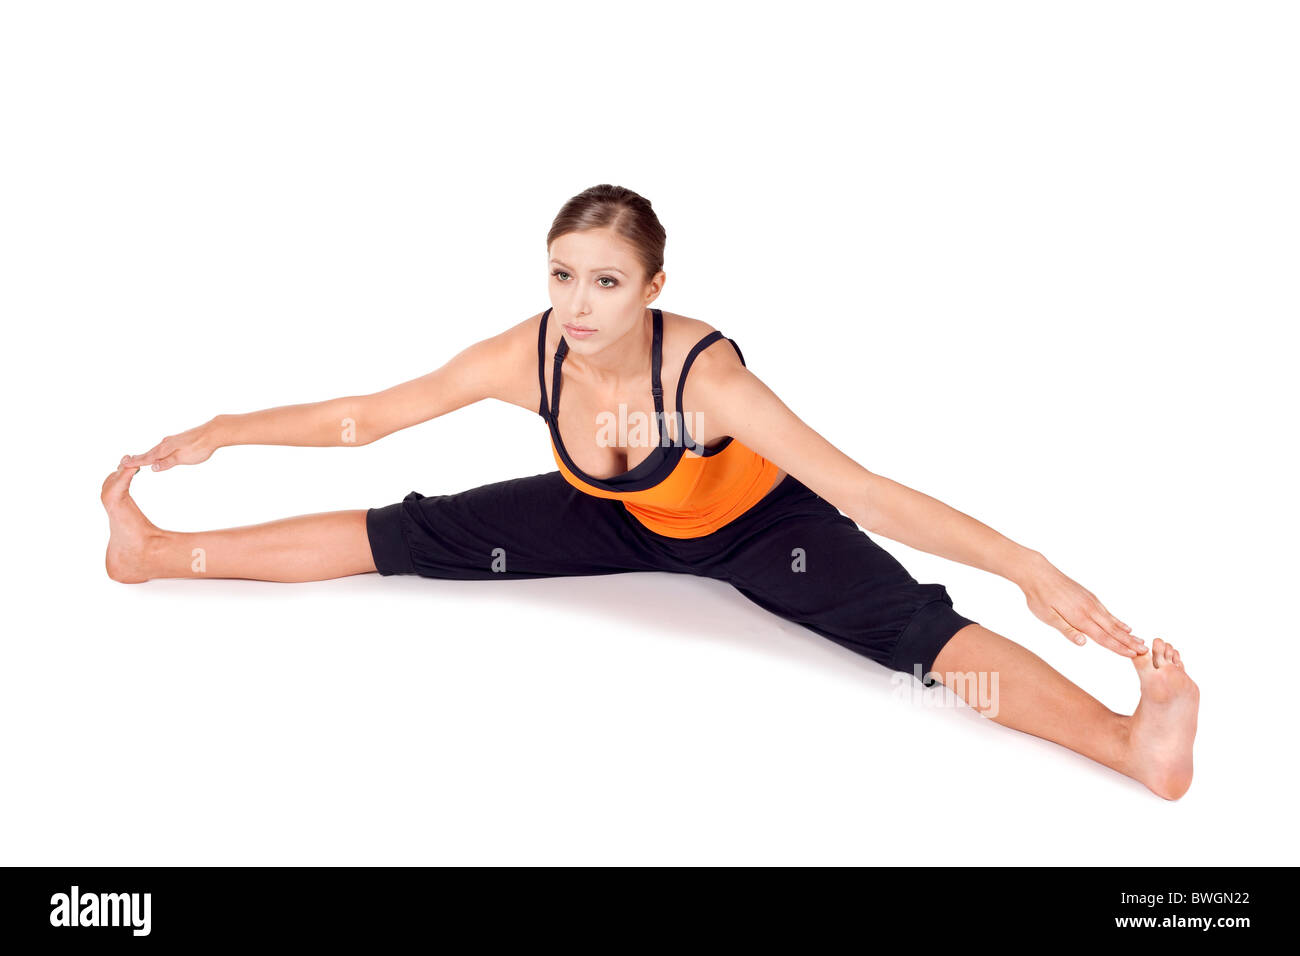 Woman Doing First Stage Of Yoga Exercise Called Seated Wide Angle Pose Sanskrit Name Upavista Konasana